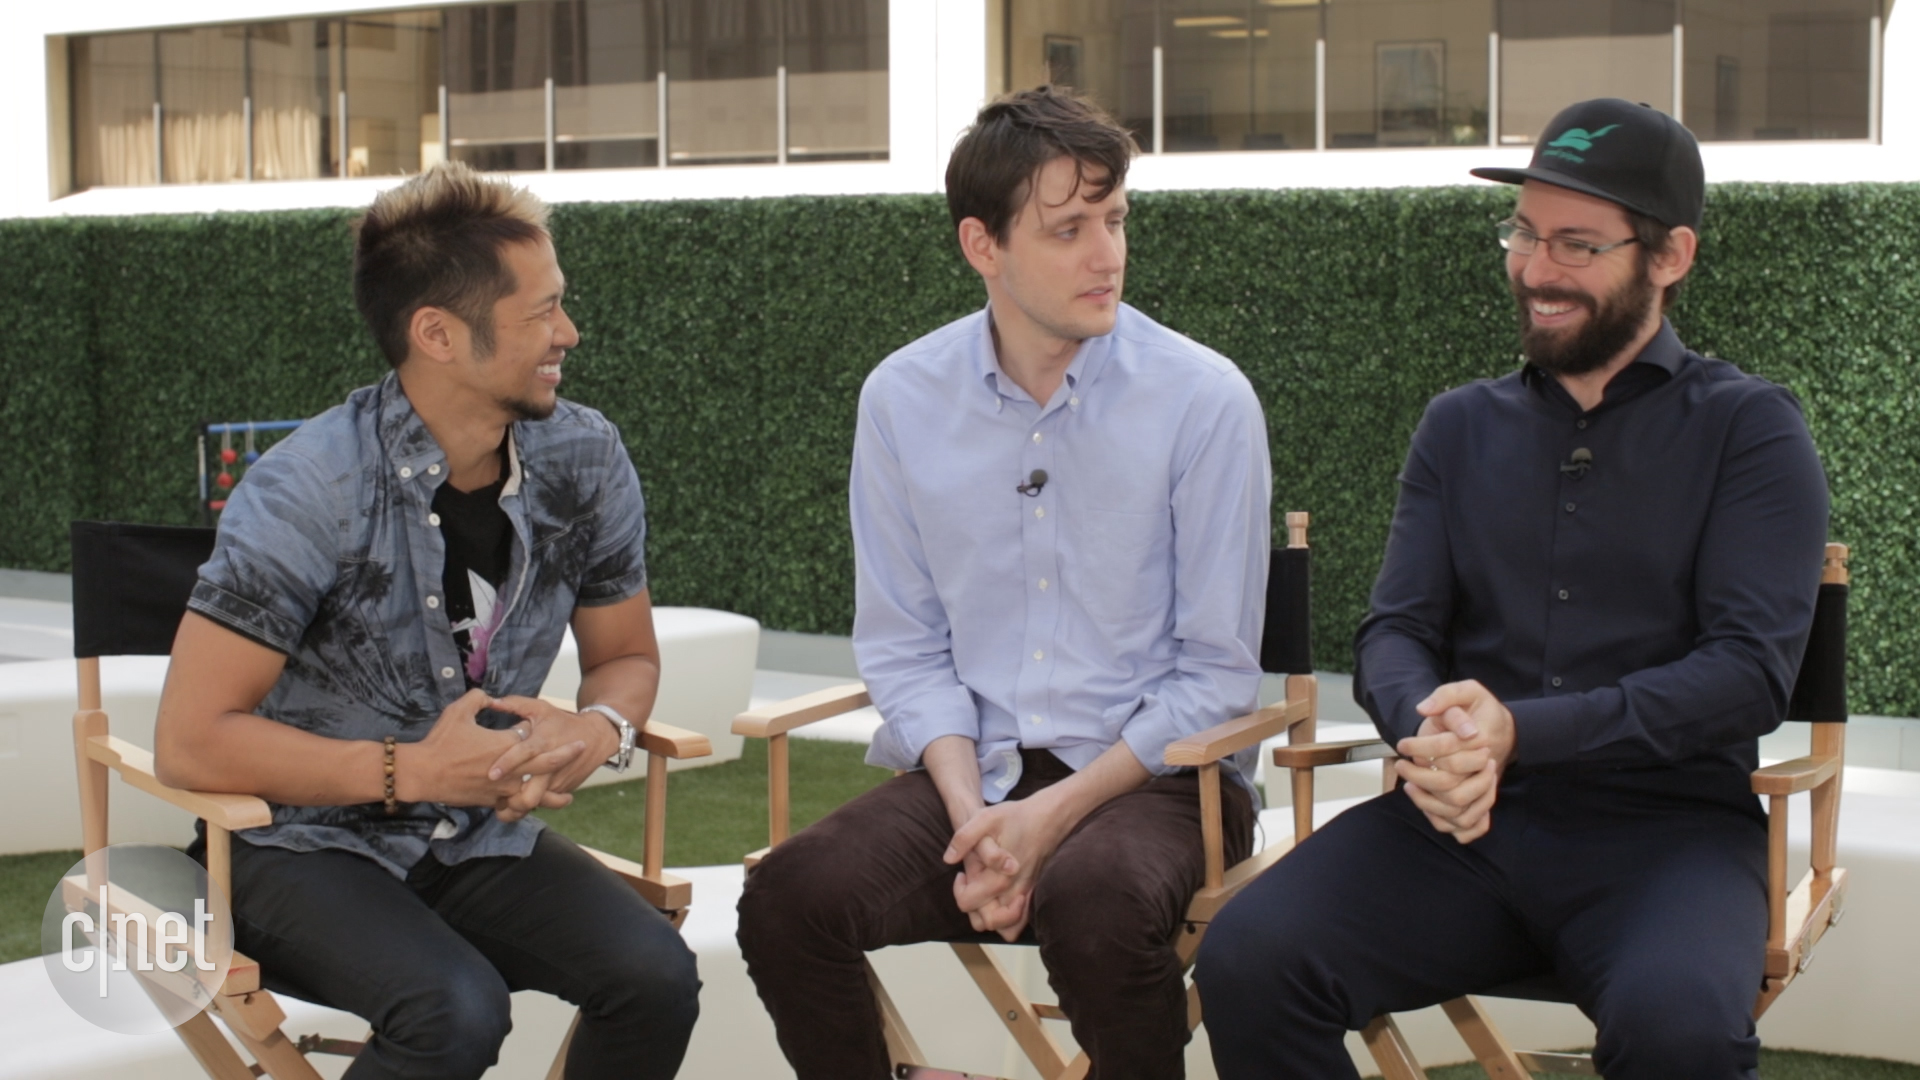 Video: The stars of HBO's 'Silicon Valley' talk...about themselves